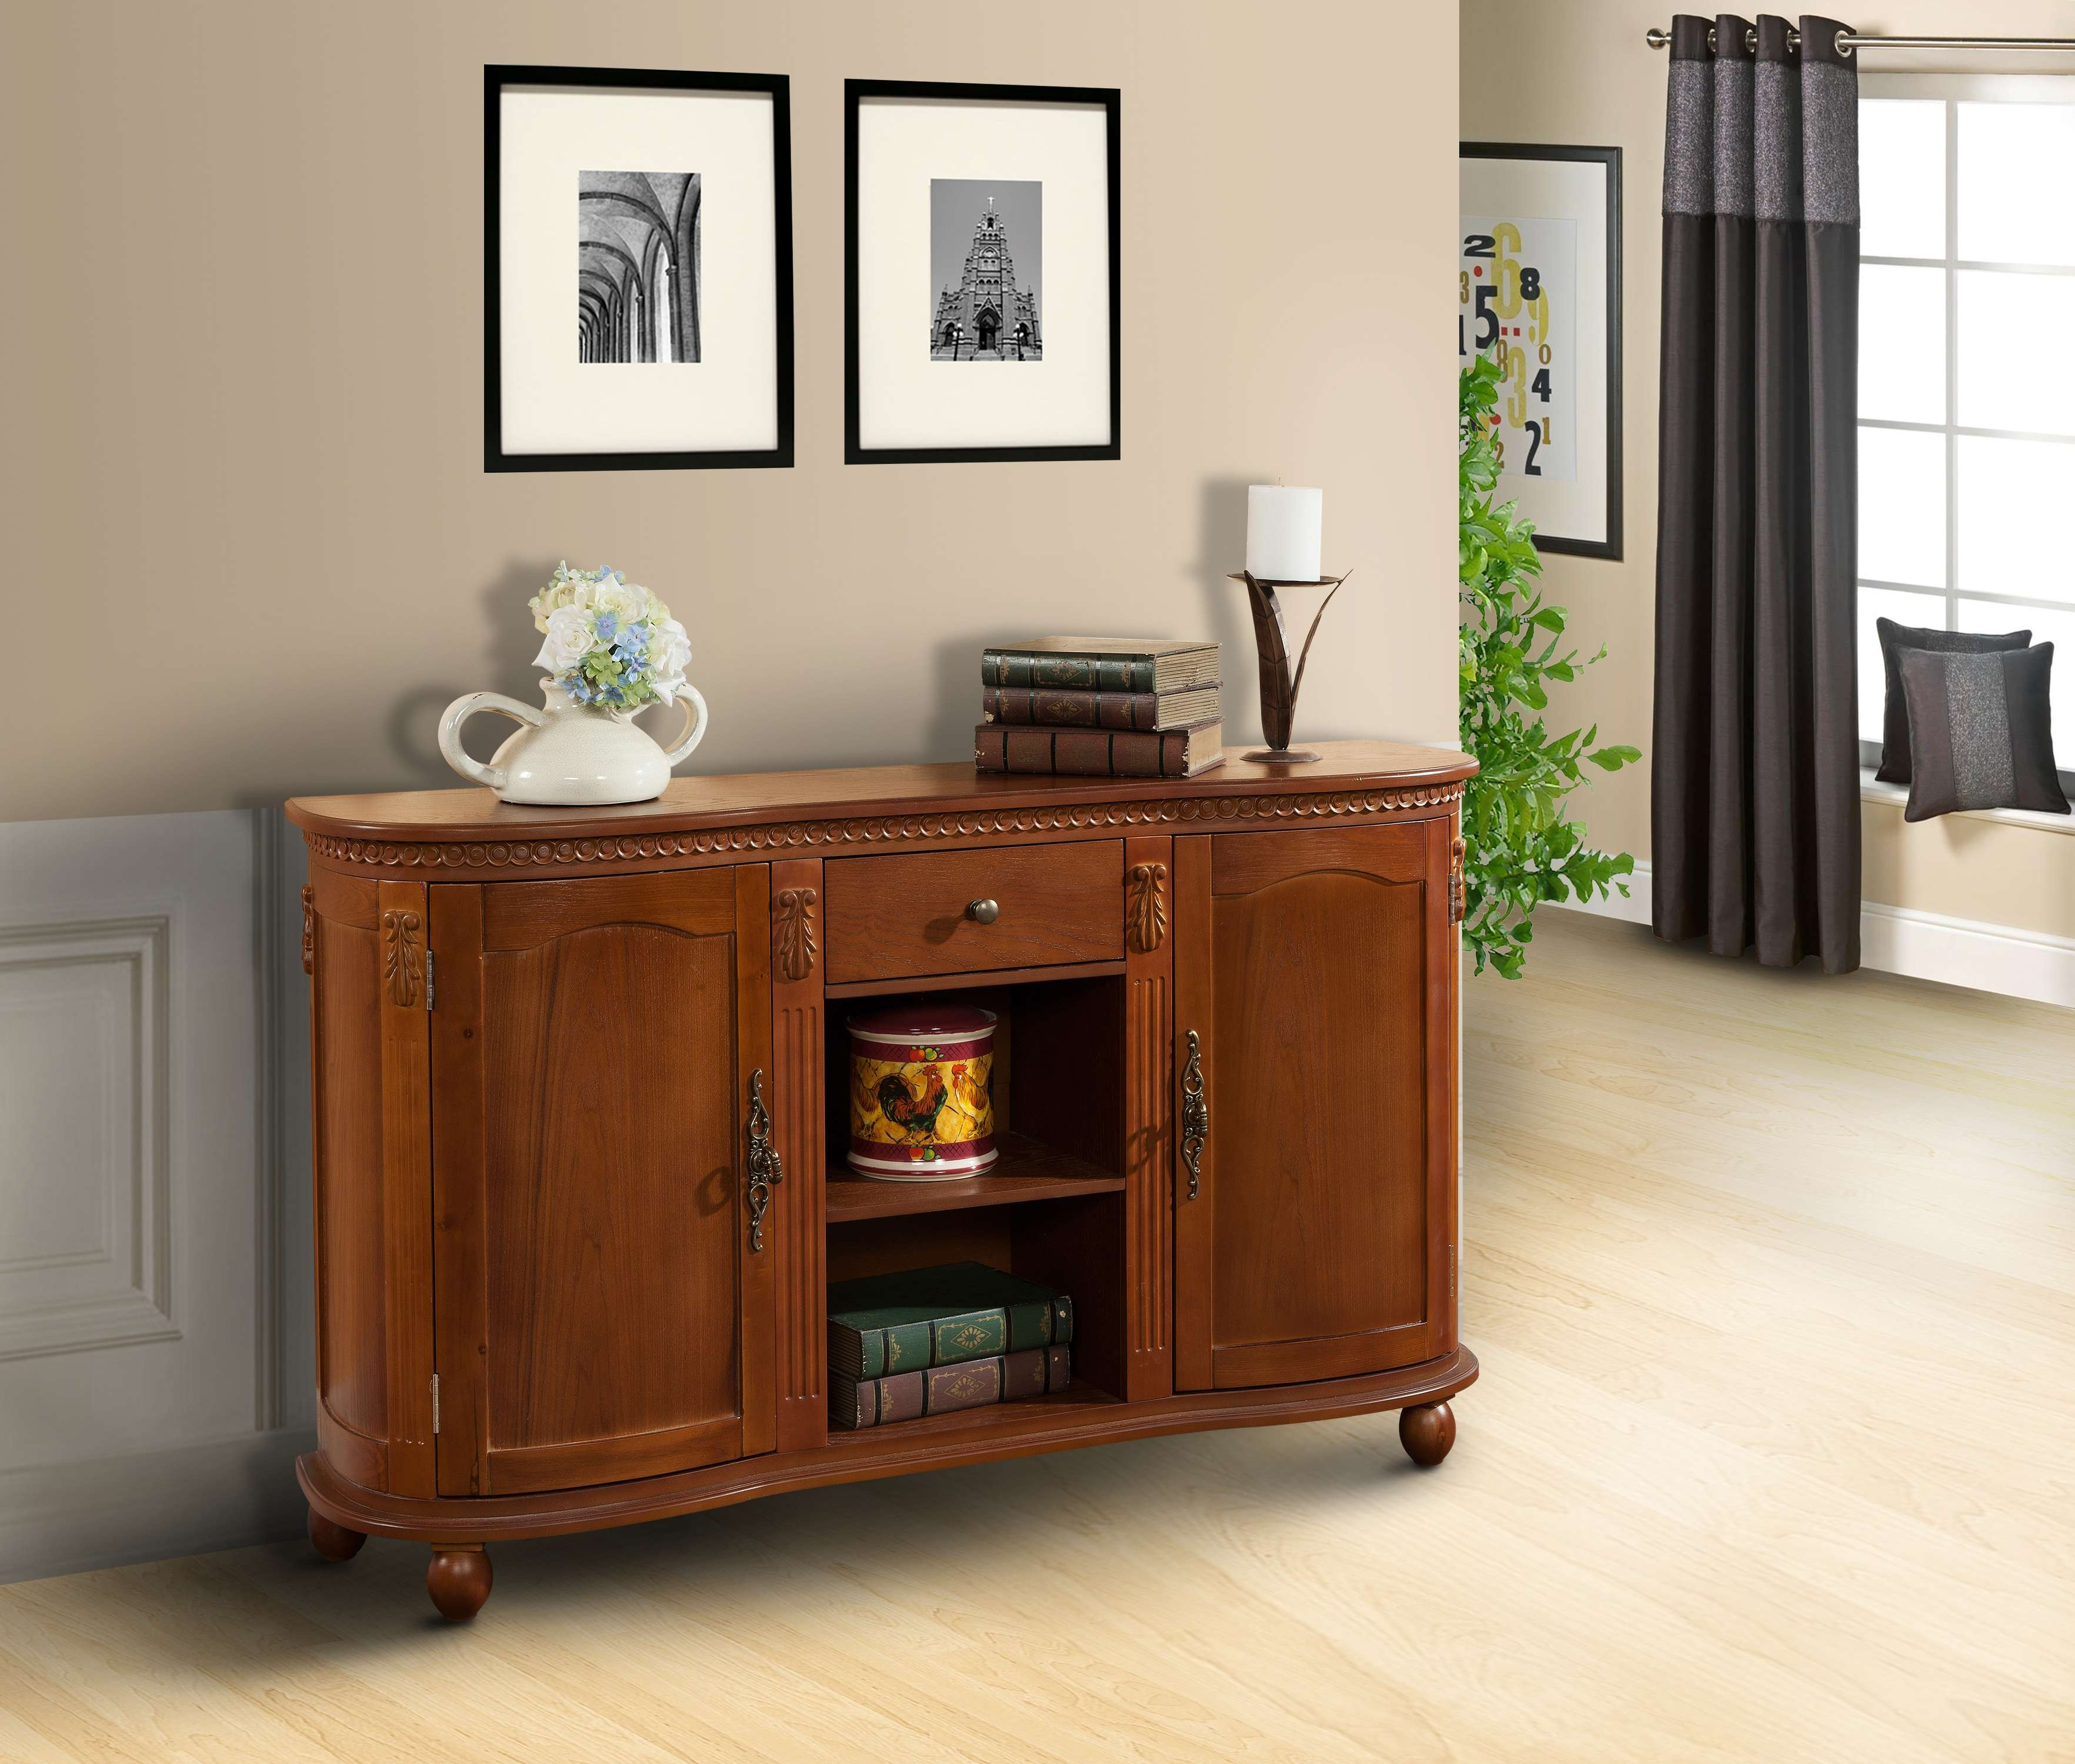 Walnut Wood Sideboard Buffet Console Table With Storage Drawer Within Sideboards Buffet Furniture (View 20 of 20)